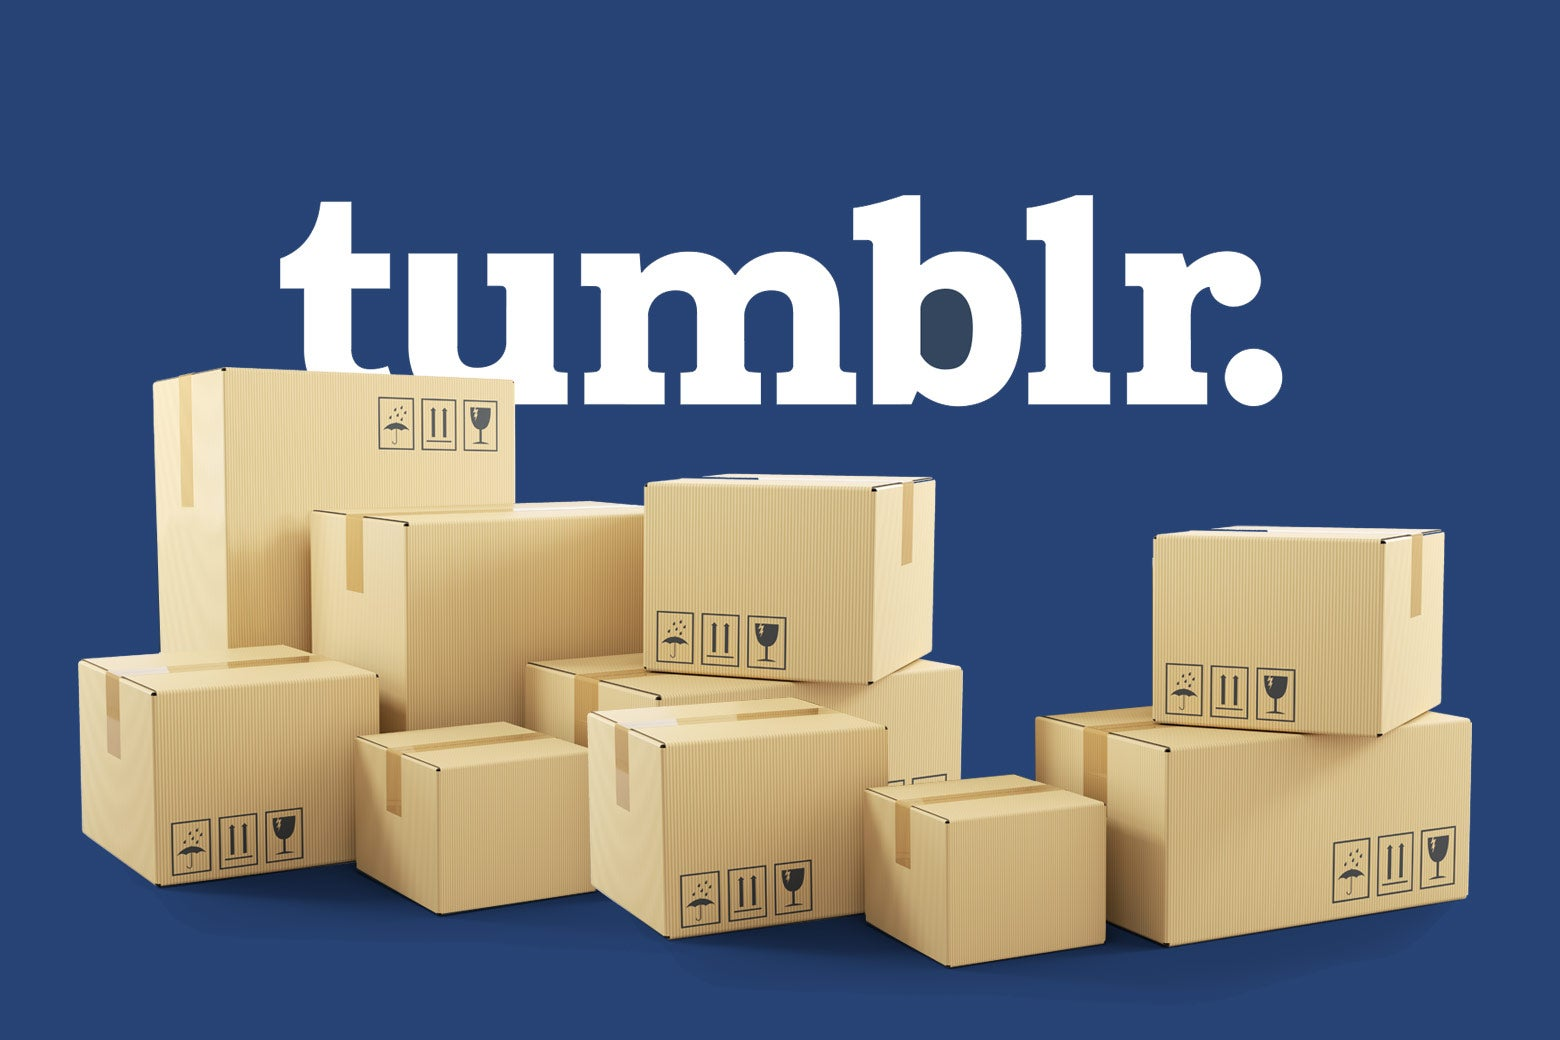 Moving boxes in front of the Tumblr logo